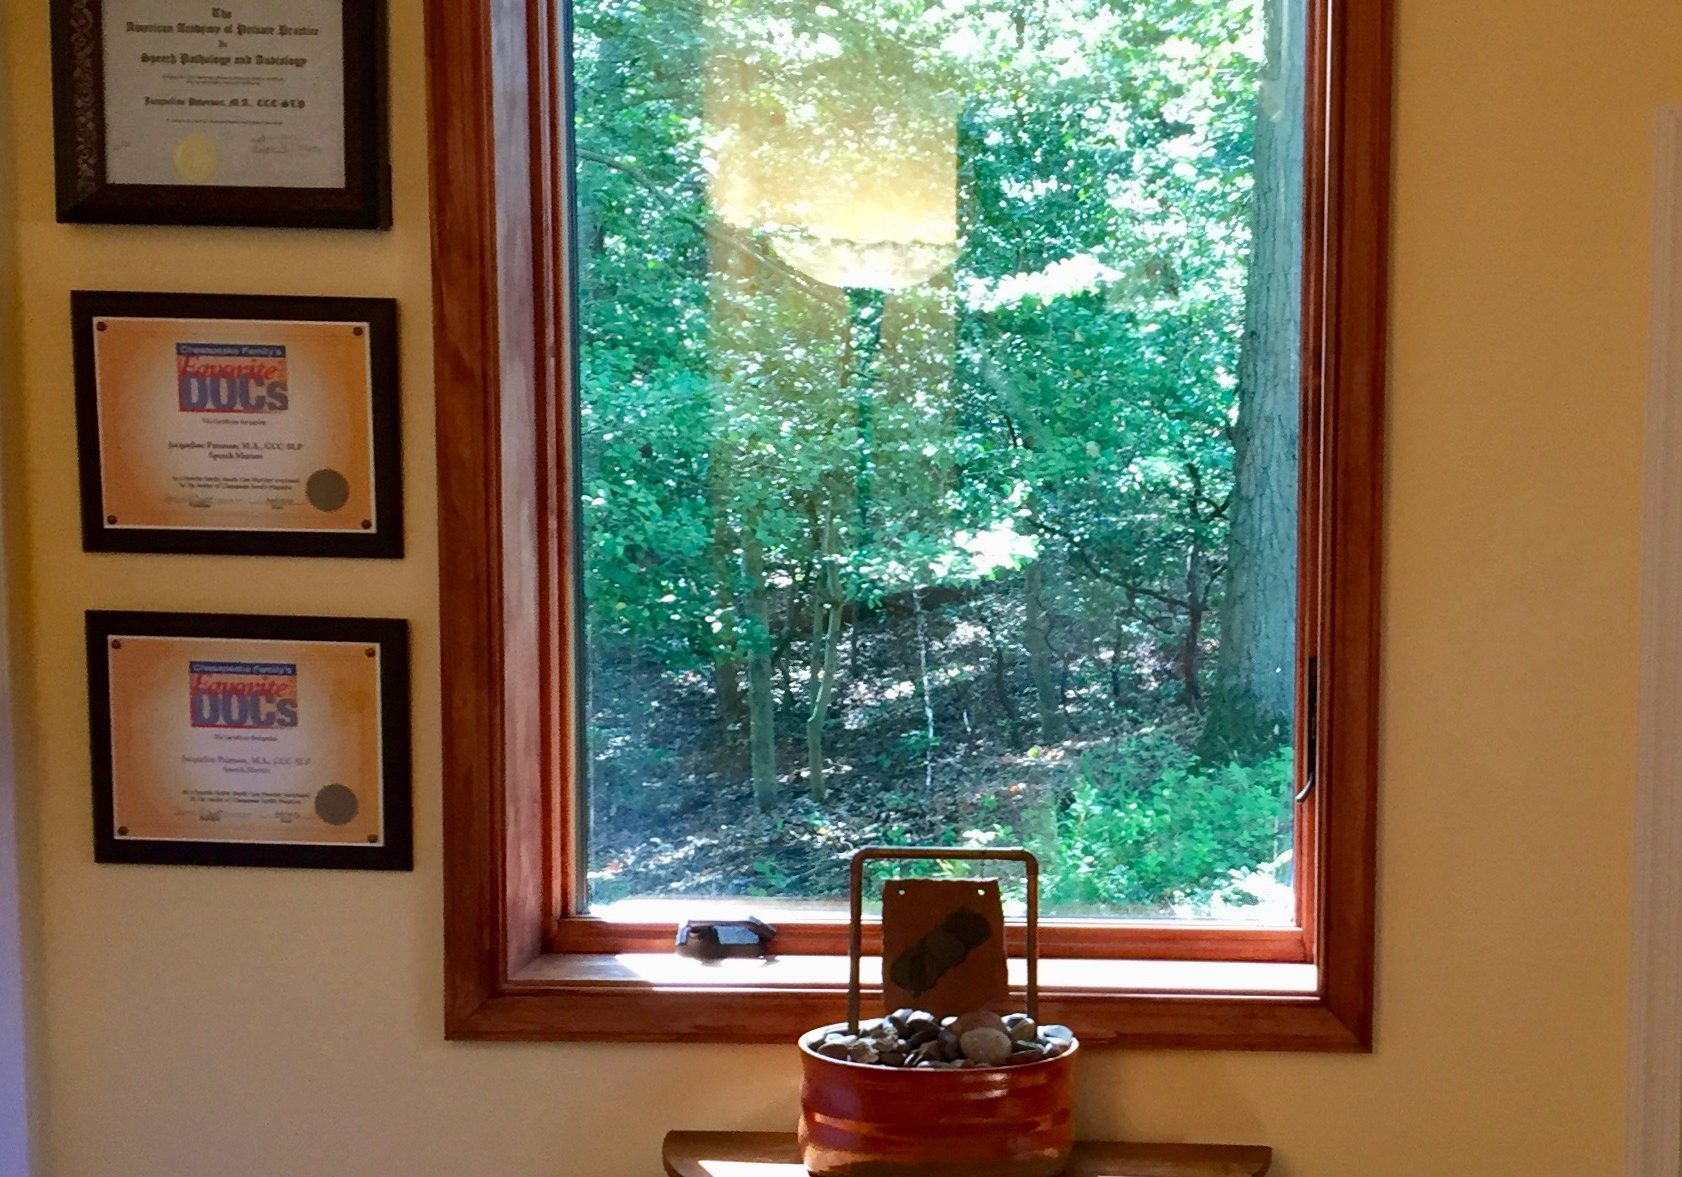 Waiting room window looking out into forested area